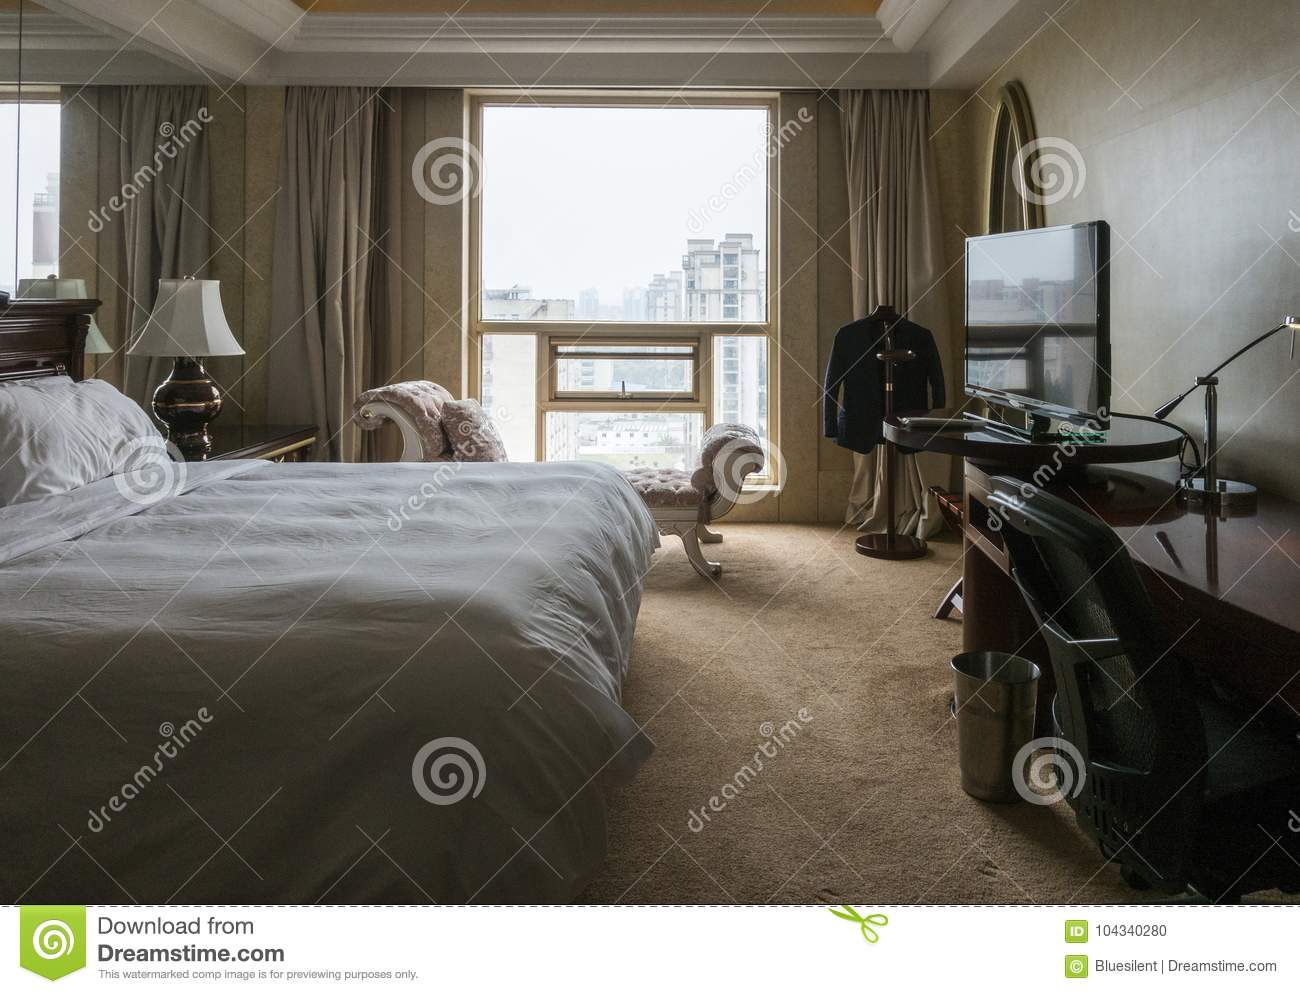 Interior Of A Hotel Room Stock Photo Image Of Bedrooms 104340280